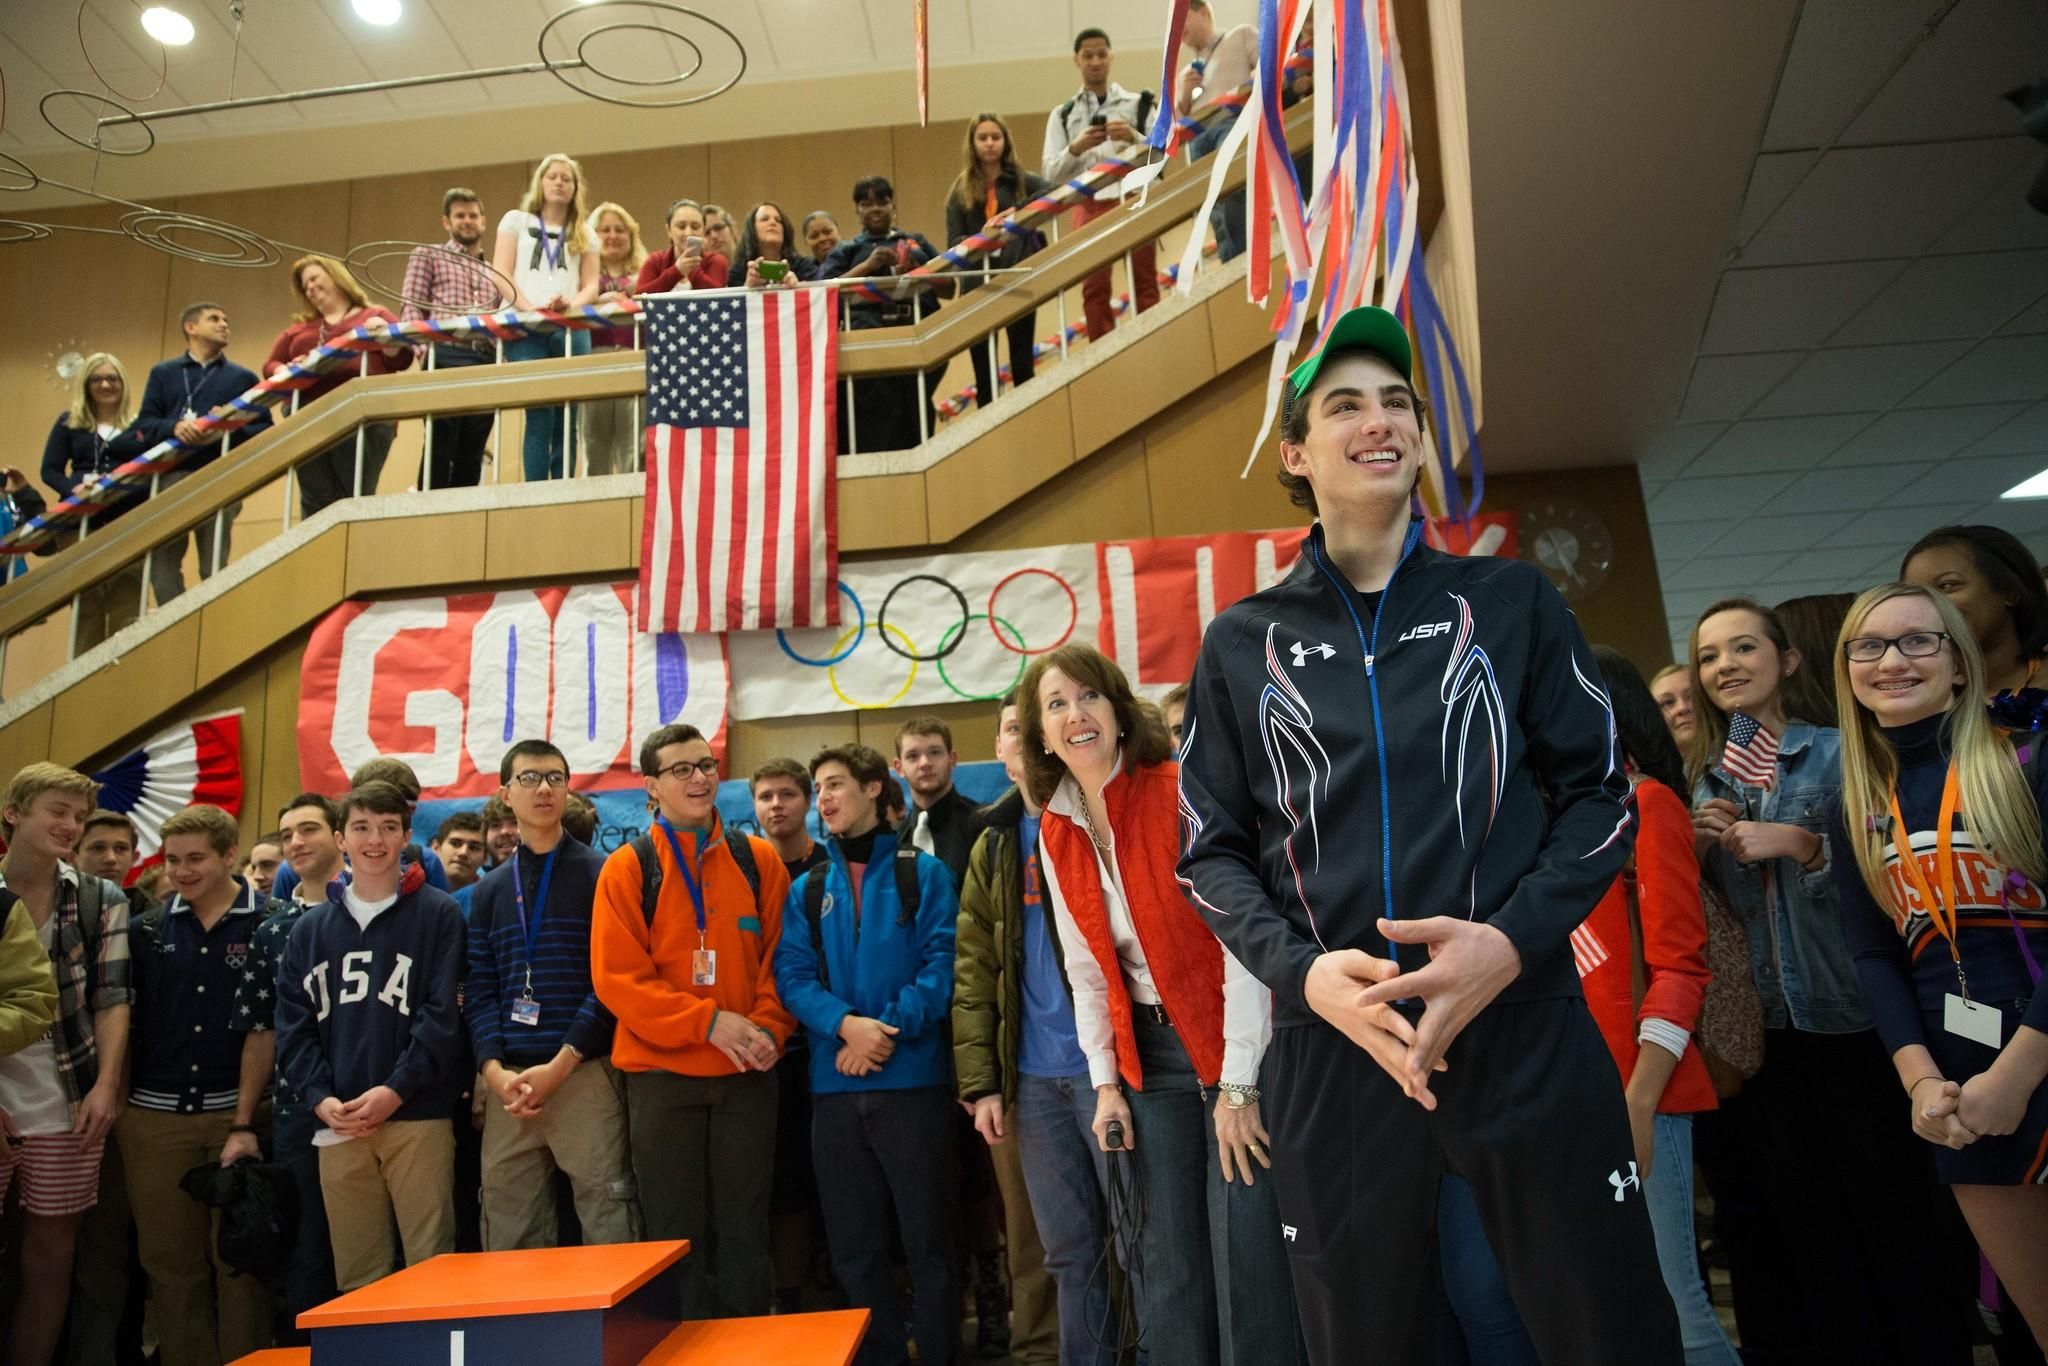 Olympic speedskater Emery Lehman reacts to the crowd during a send-off event held in the lobby of Oak Park-River Forest High School on Friday.